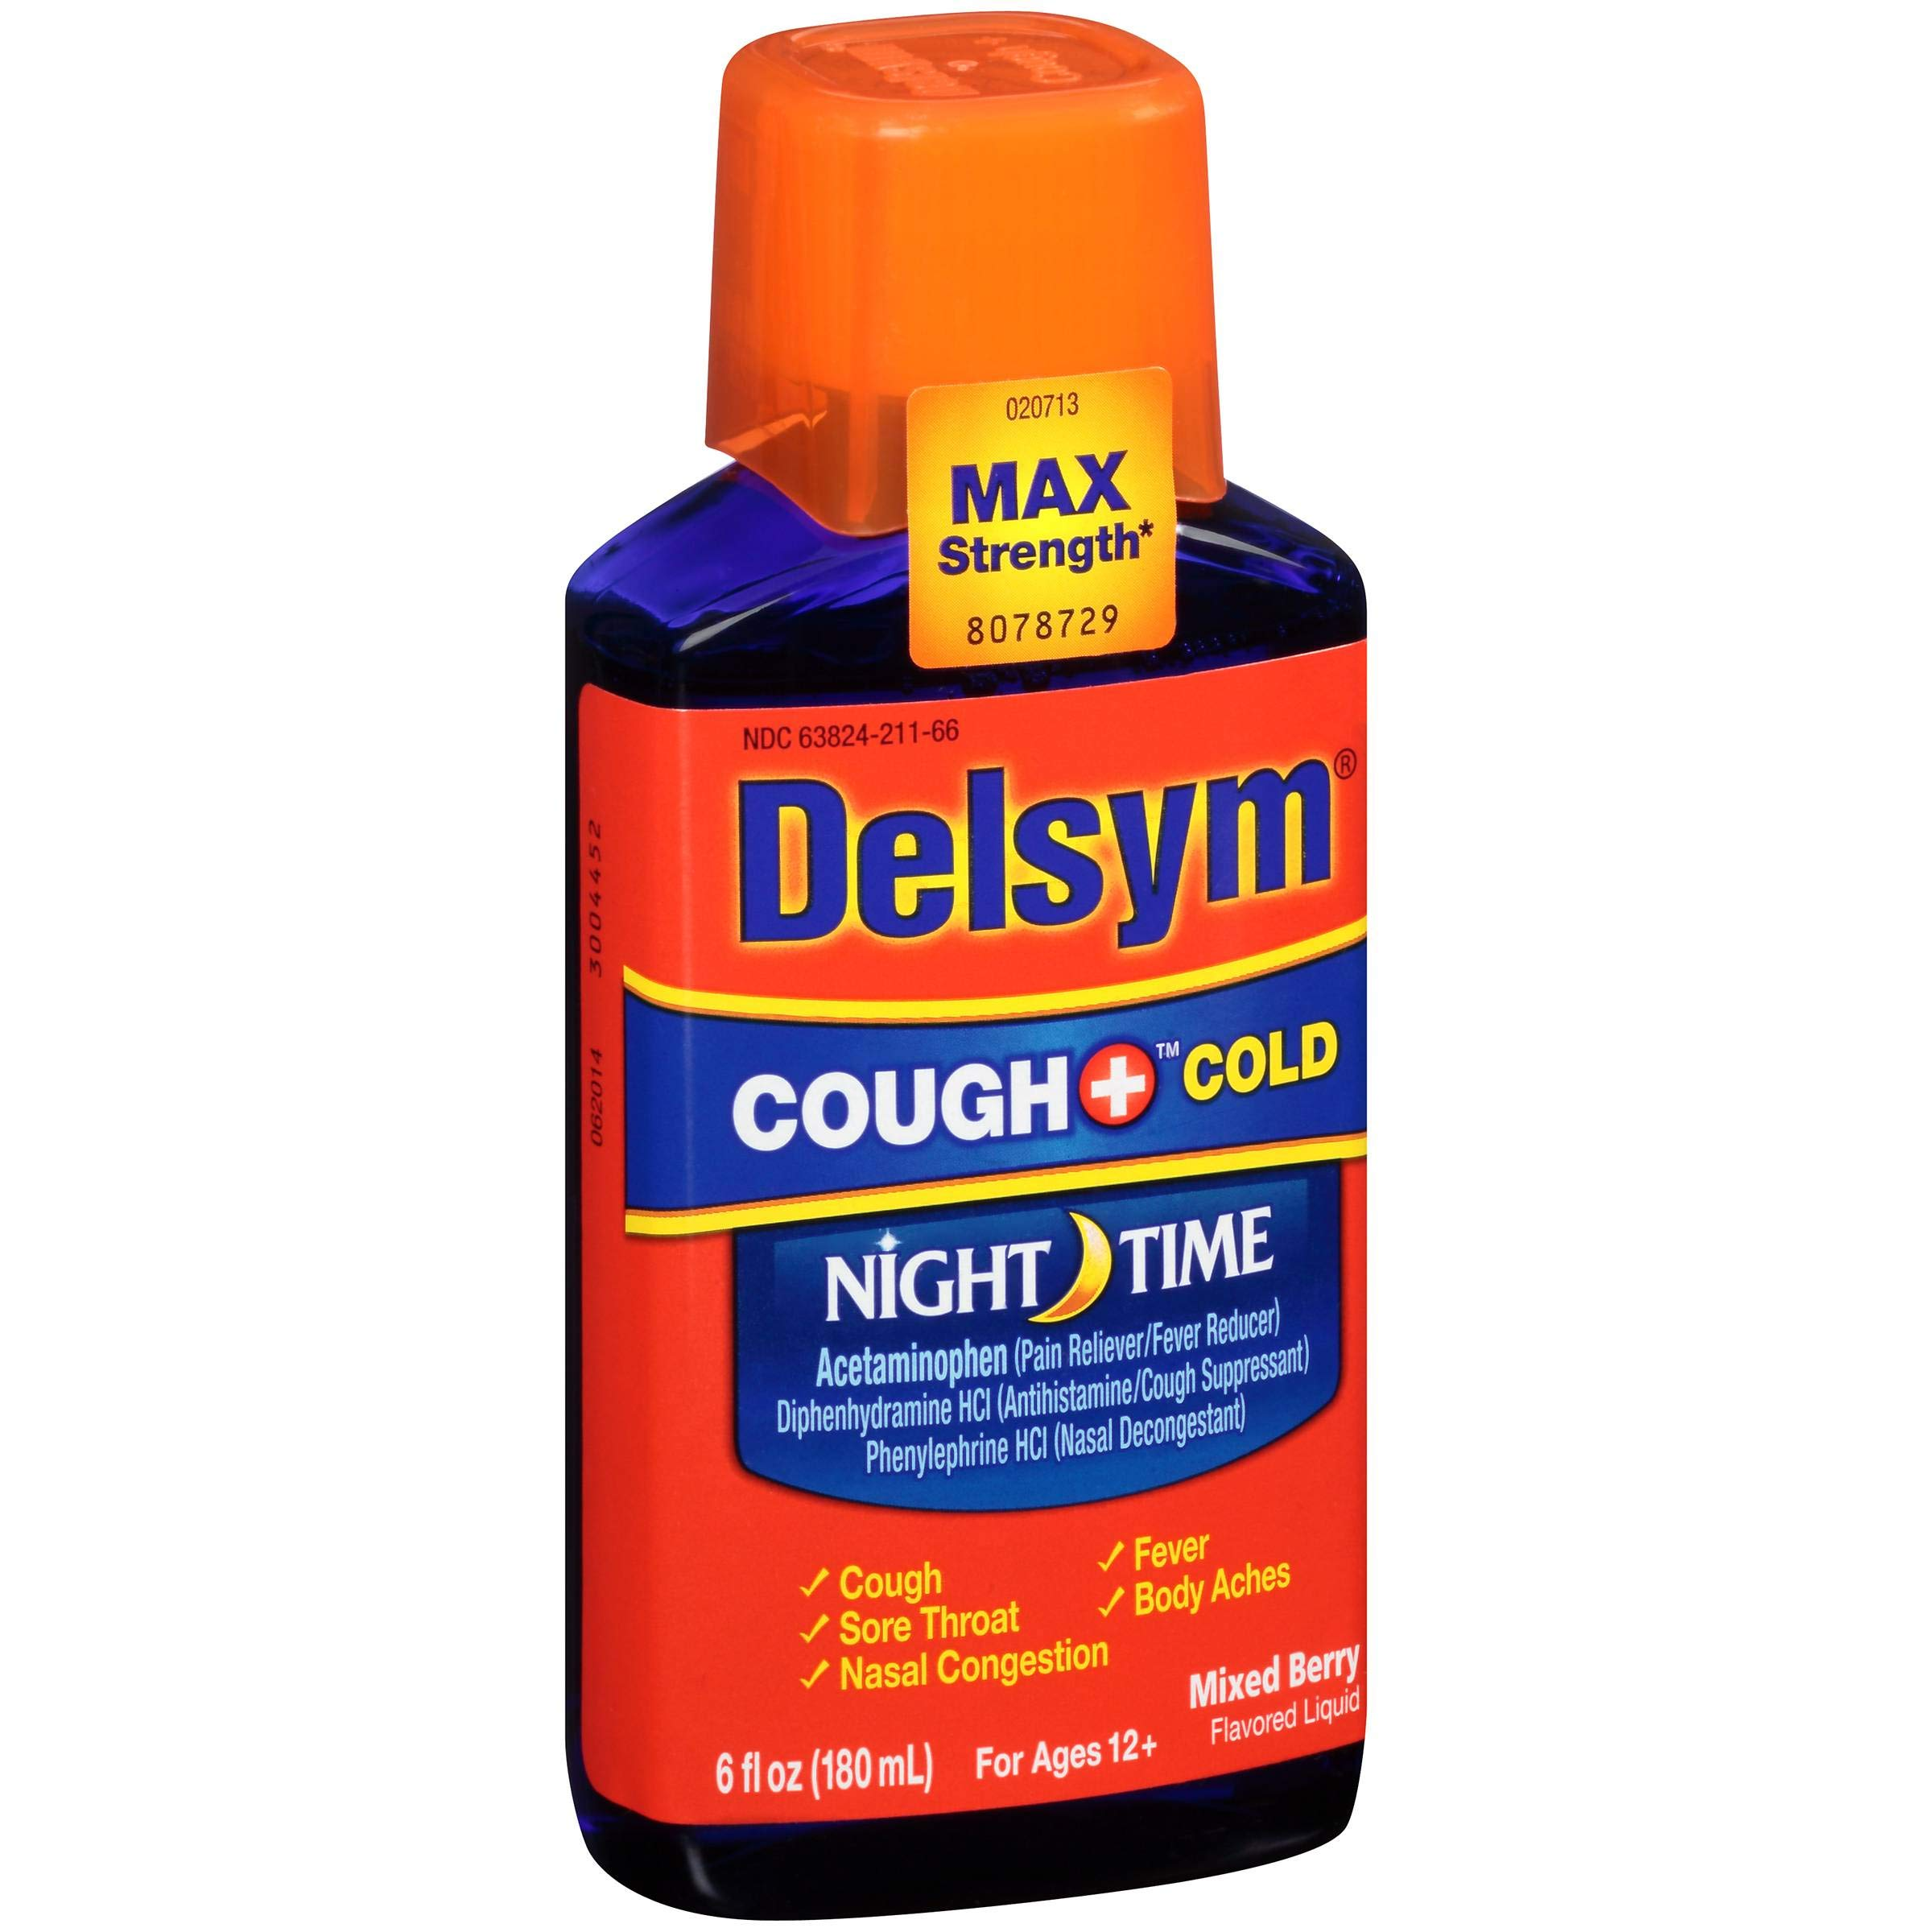 Delsym Childrens Mixed Berry Night Time Cough Plus Cold Relief Liquid, 6 Fluid Ounce - 6 per case. by Delsym